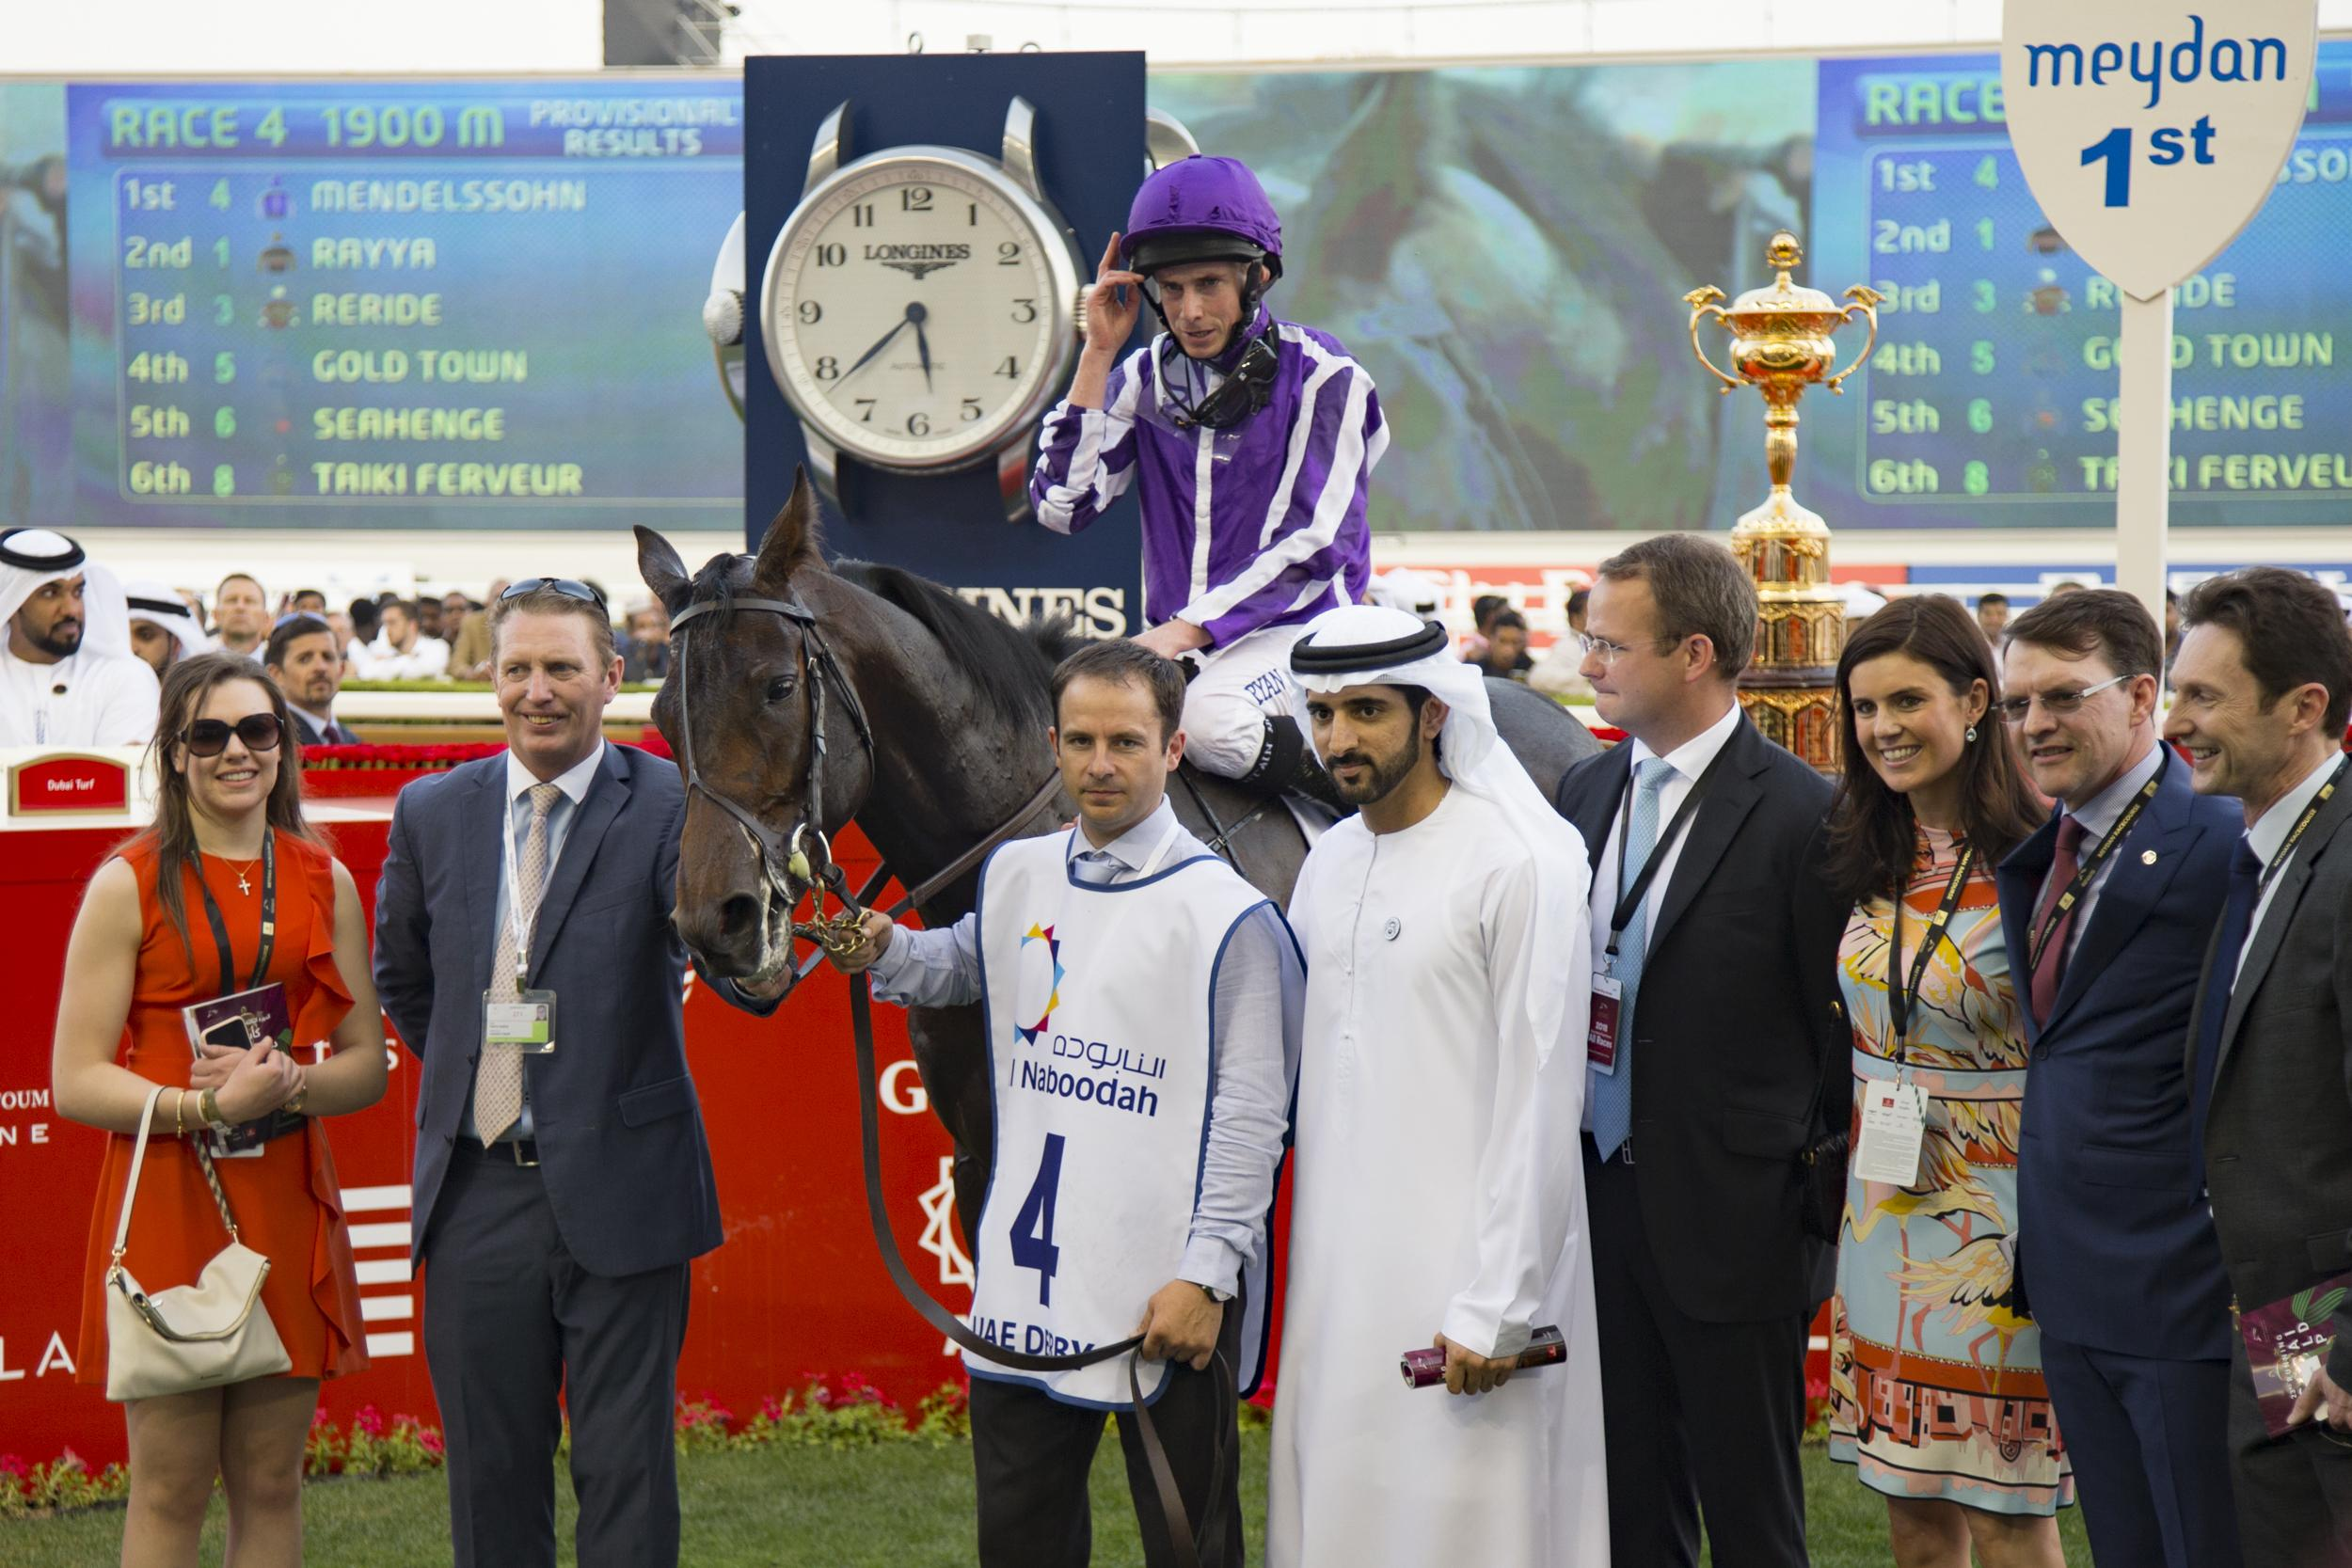 Mendelssohn and connections in the Meydan winner's circle.